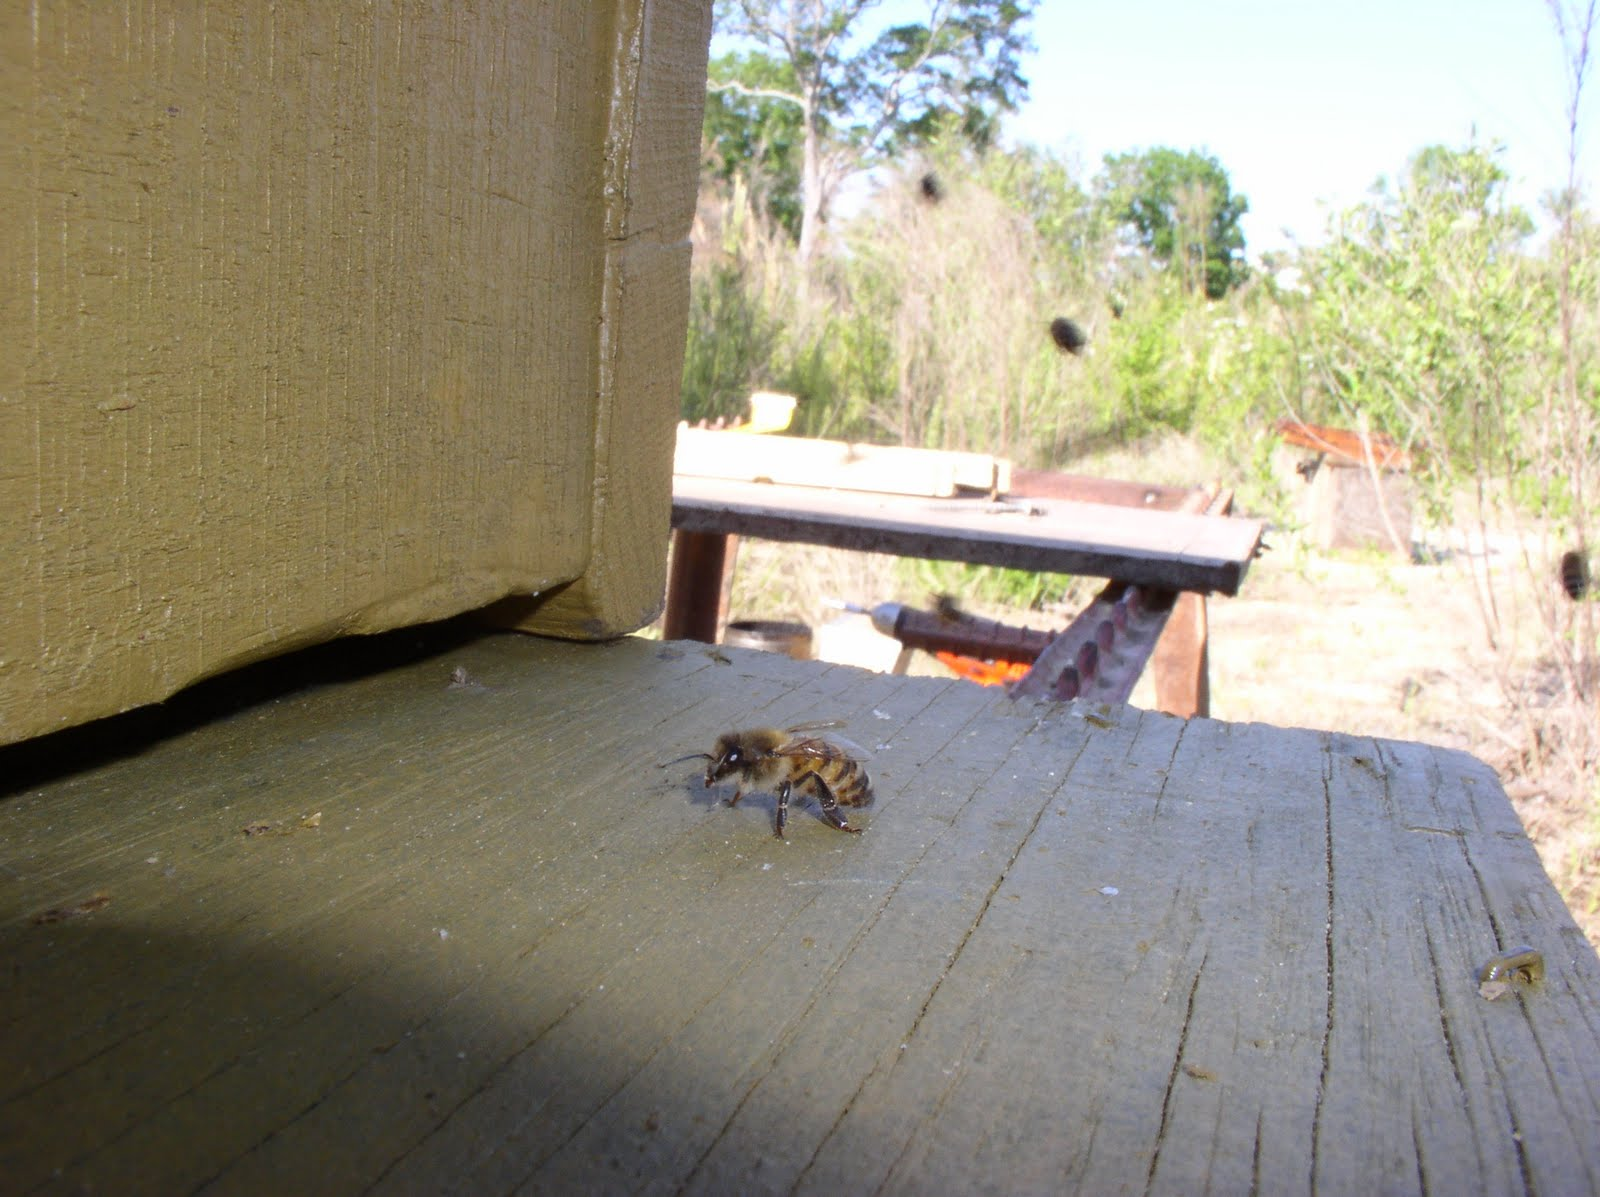 how to move a bee swarm to a hive